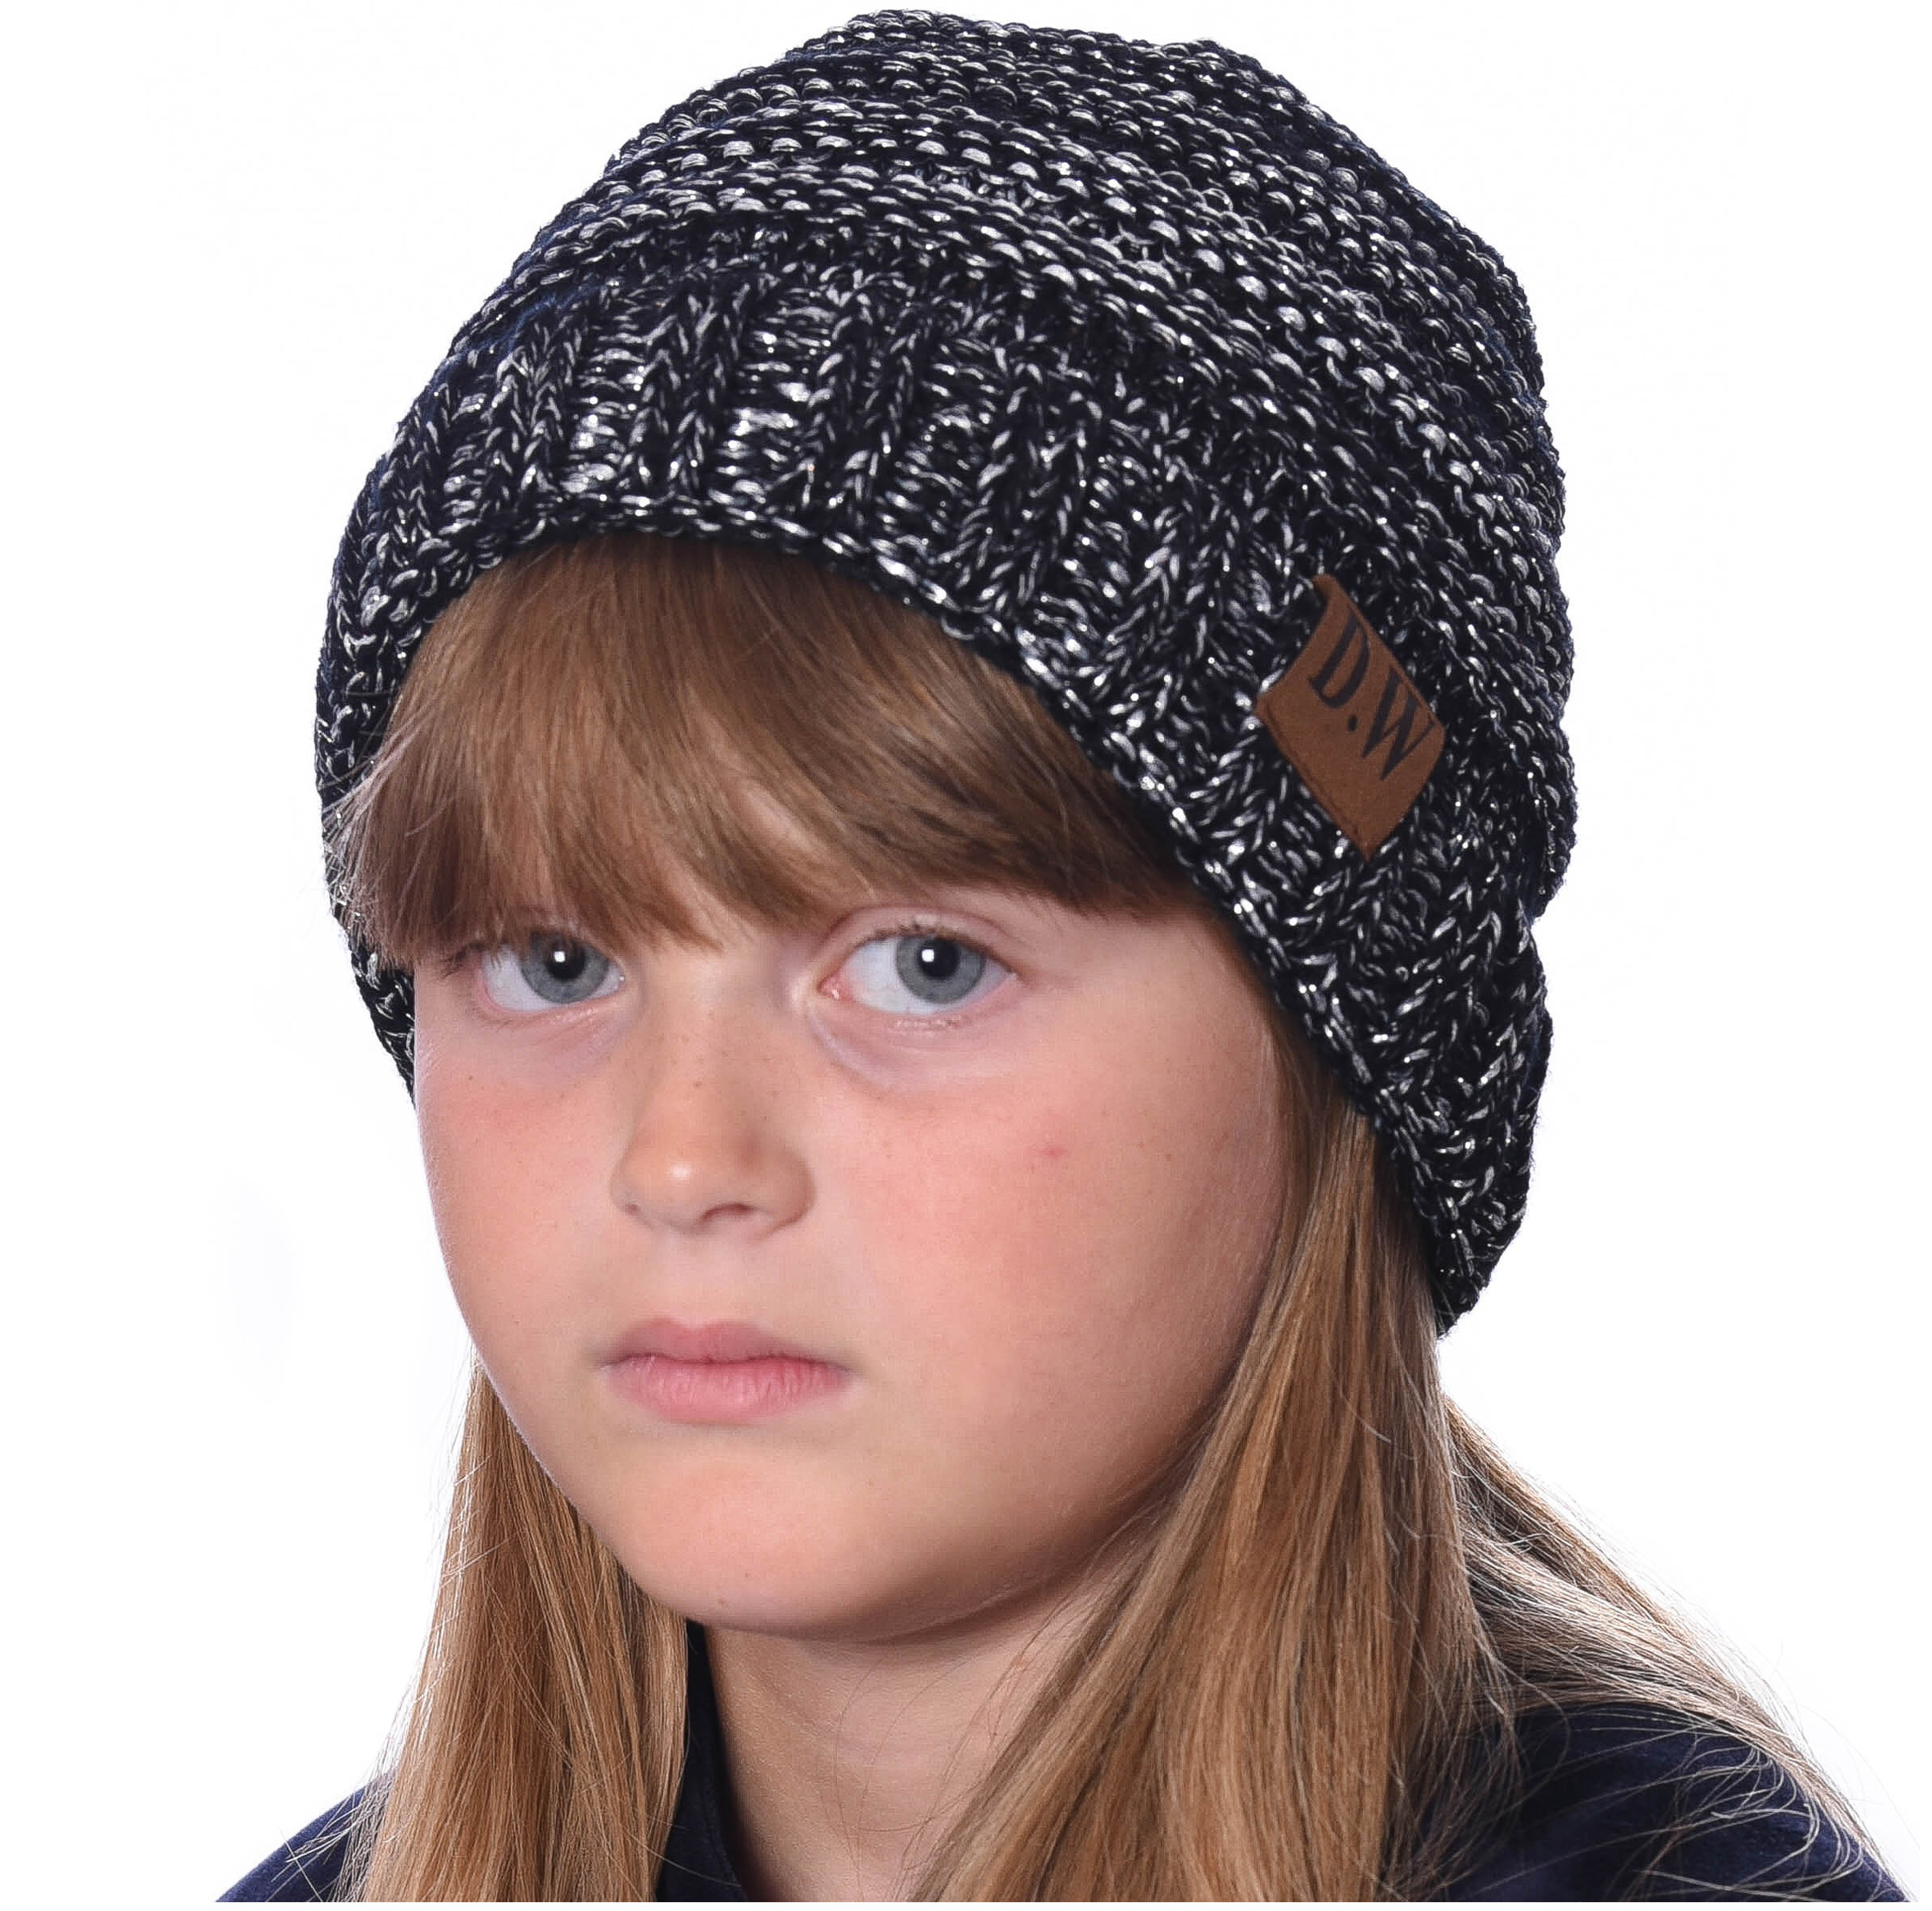 DEBRA WEITZNER - DEBRA WEITZNER Beanie Hats for Kids Unisex Winter Slouchy Beanie  for Girls Boys Toddlers Black   Silver Metallic - Walmart.com be211e06943